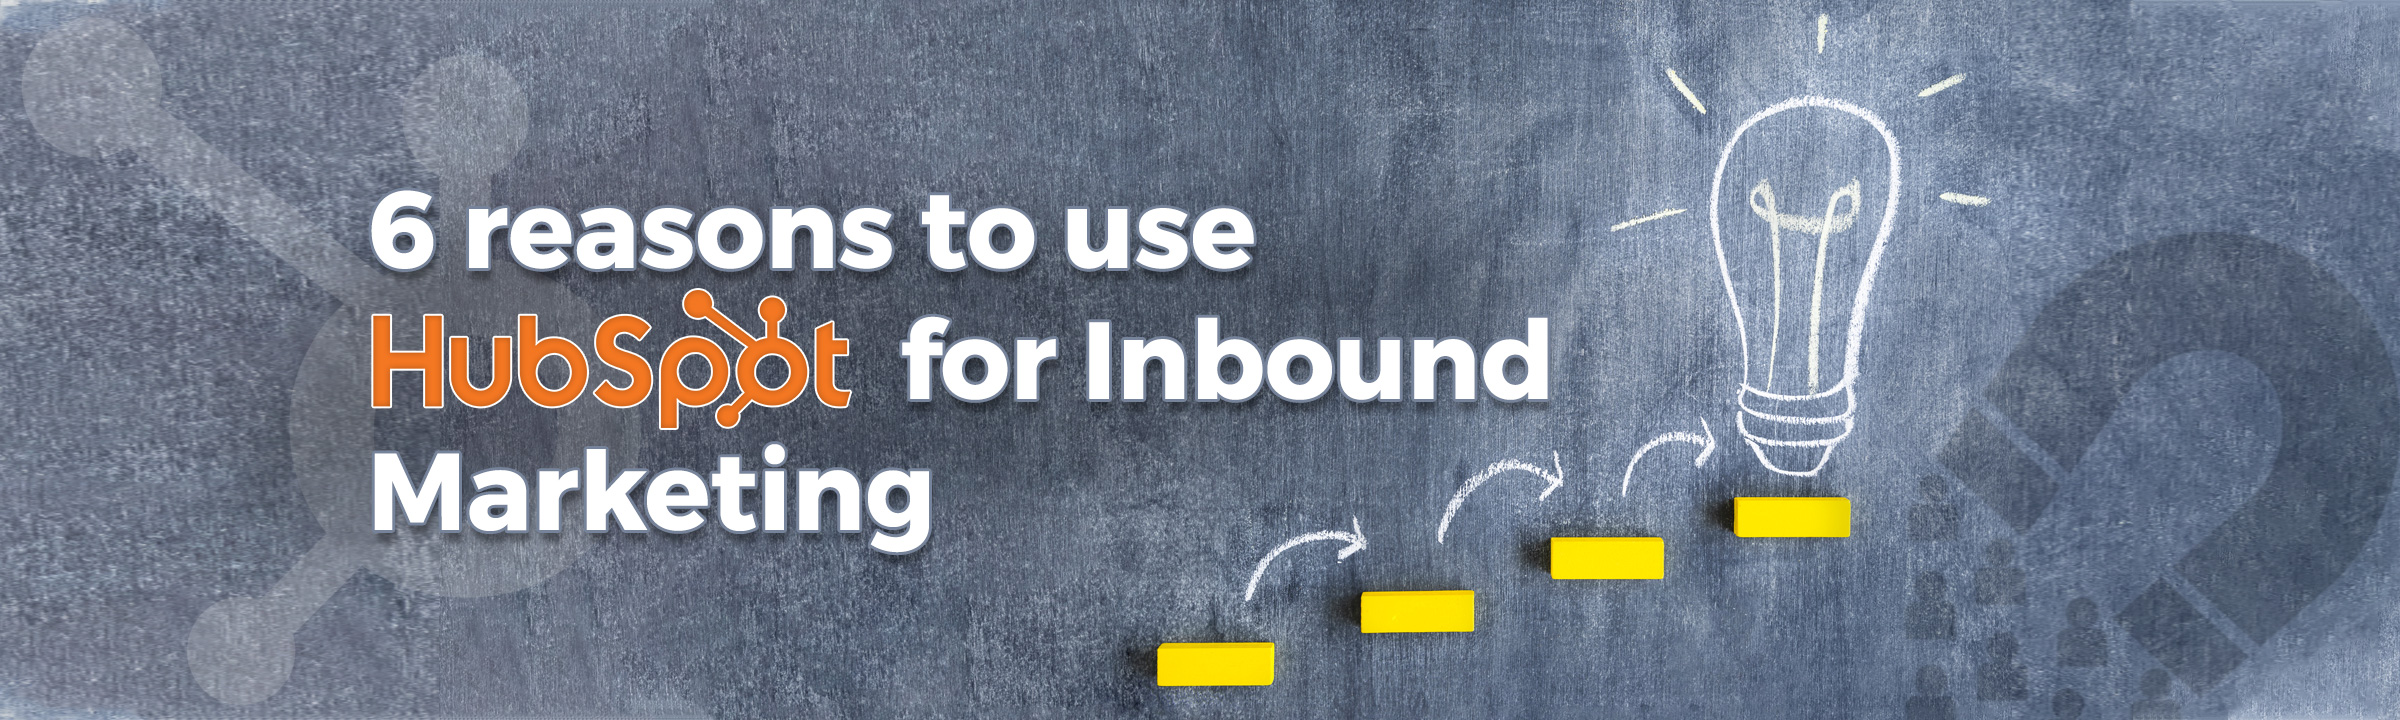 6 Reasons to use Hubspot for Inbound Marketing